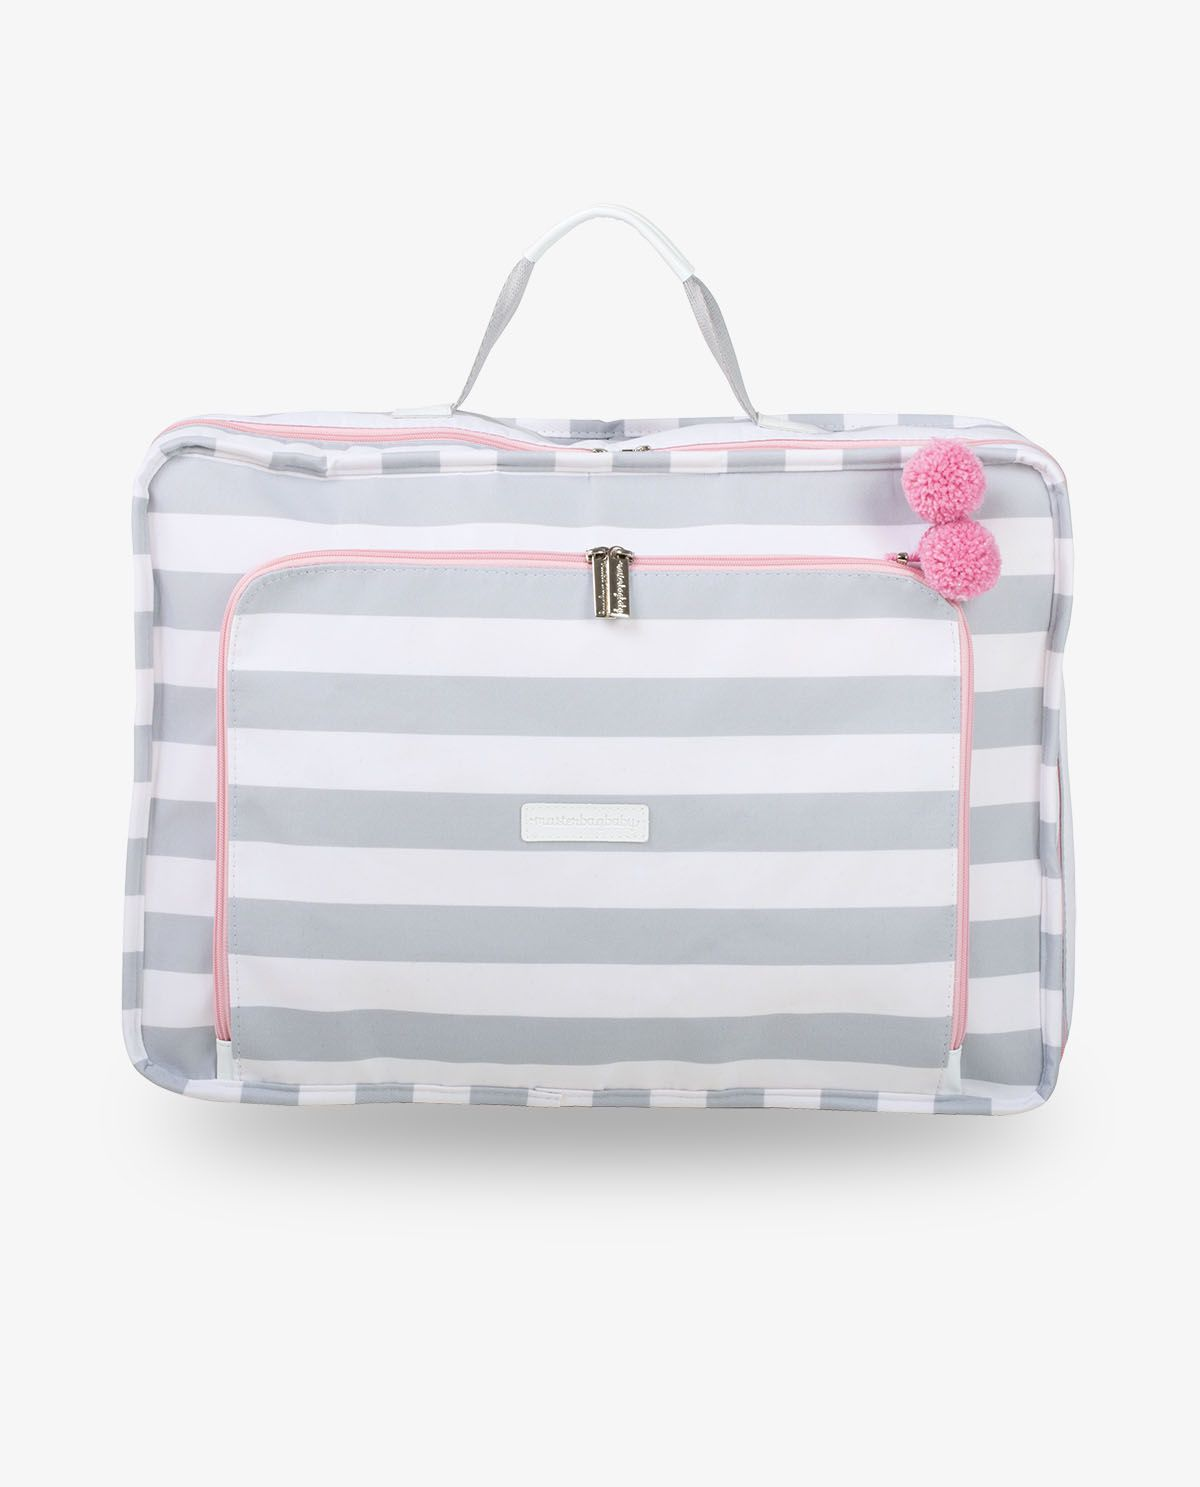 Mala Vintage Ice Pink Candy Colors - Masterbag Ref 12can402